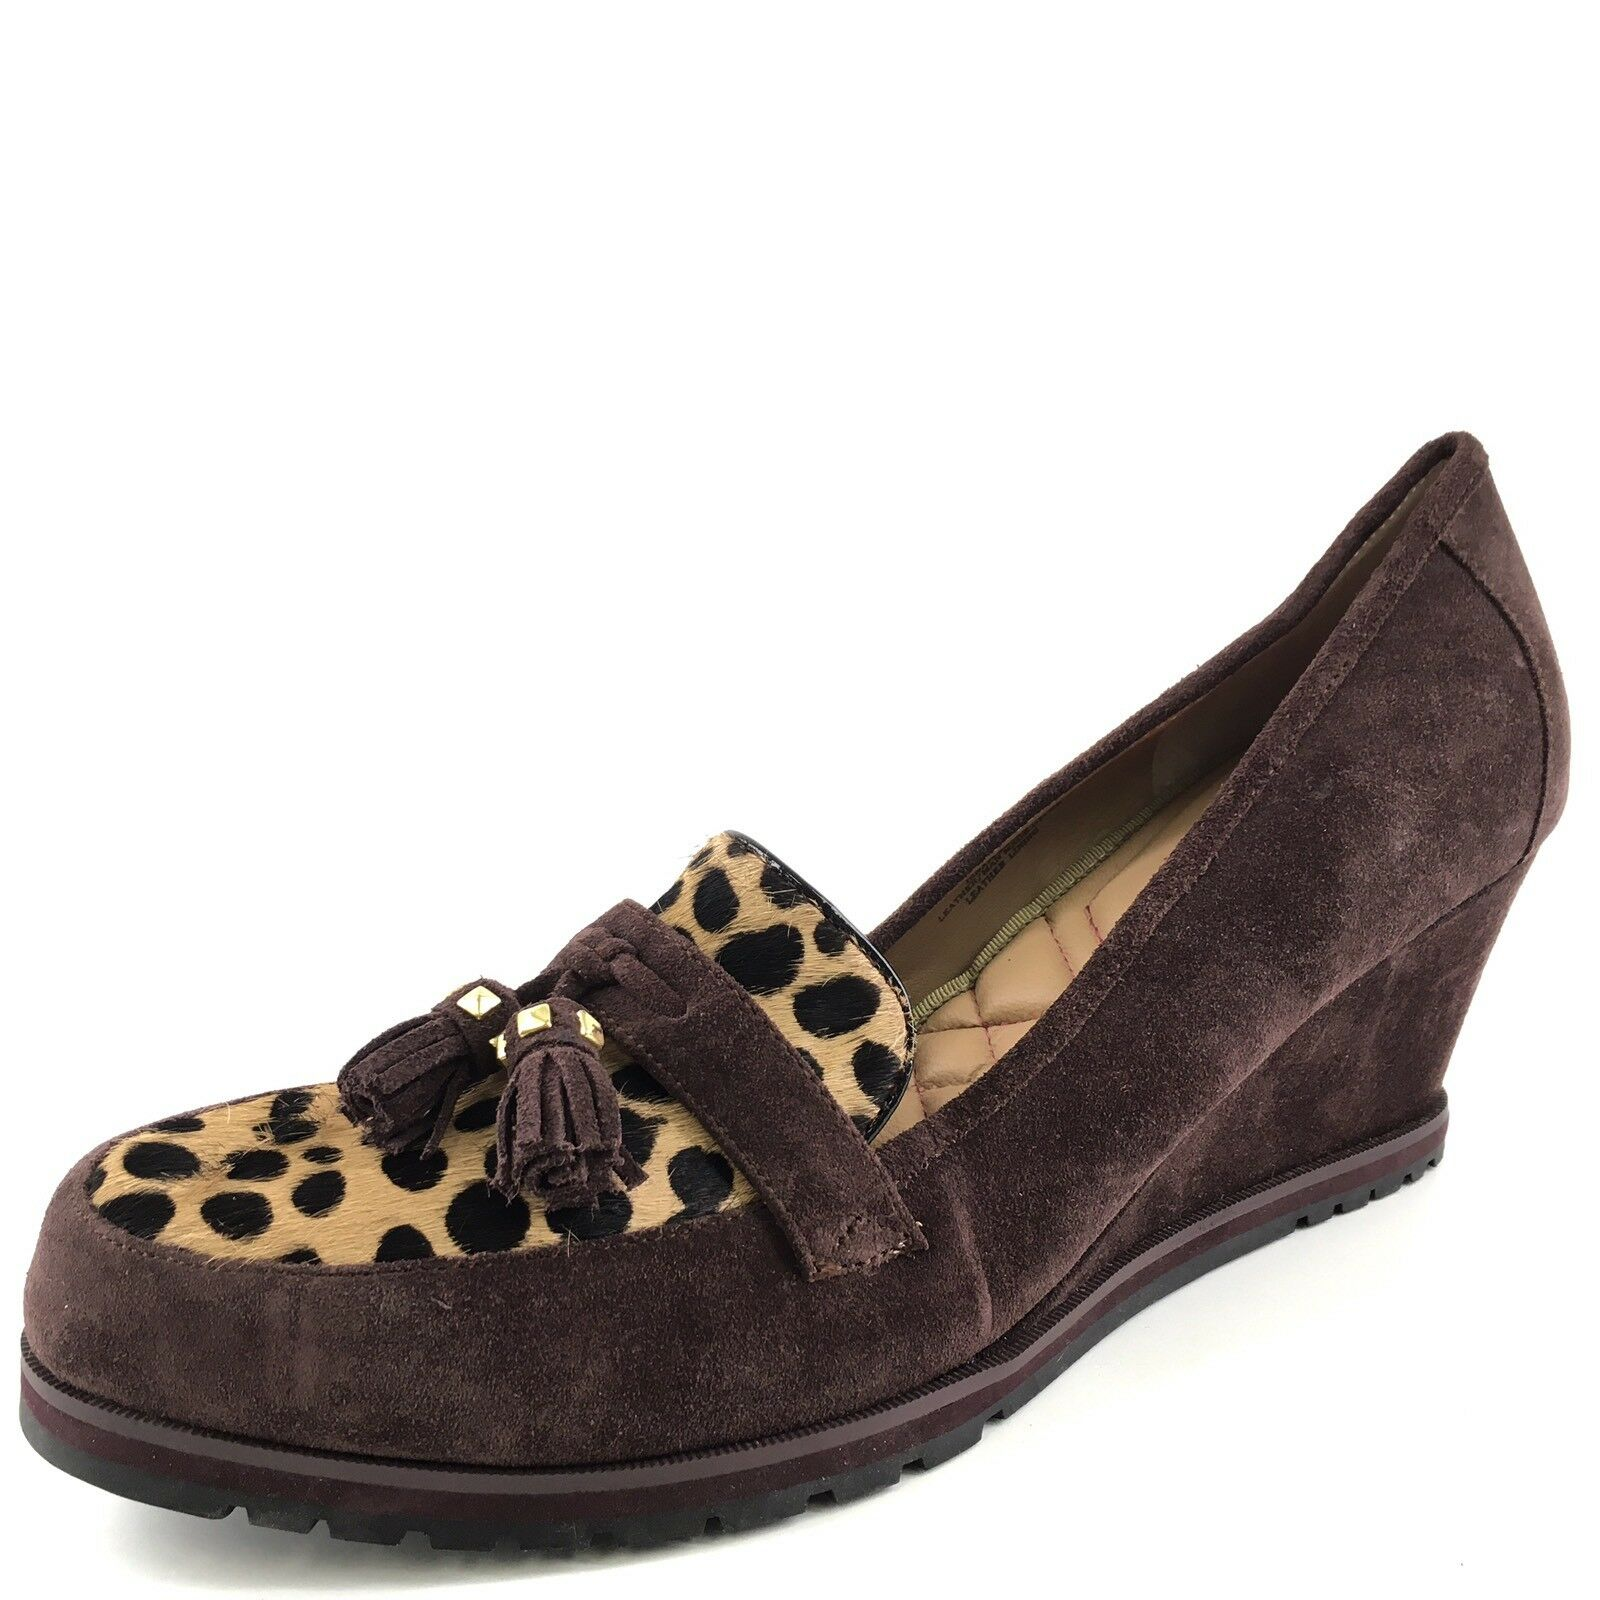 è scontato Isaac Mizrahi New York Marrone Marrone Marrone Suede Napleslee Wedge Loafers donna's Dimensione 11 M  connotazione di lusso low-key